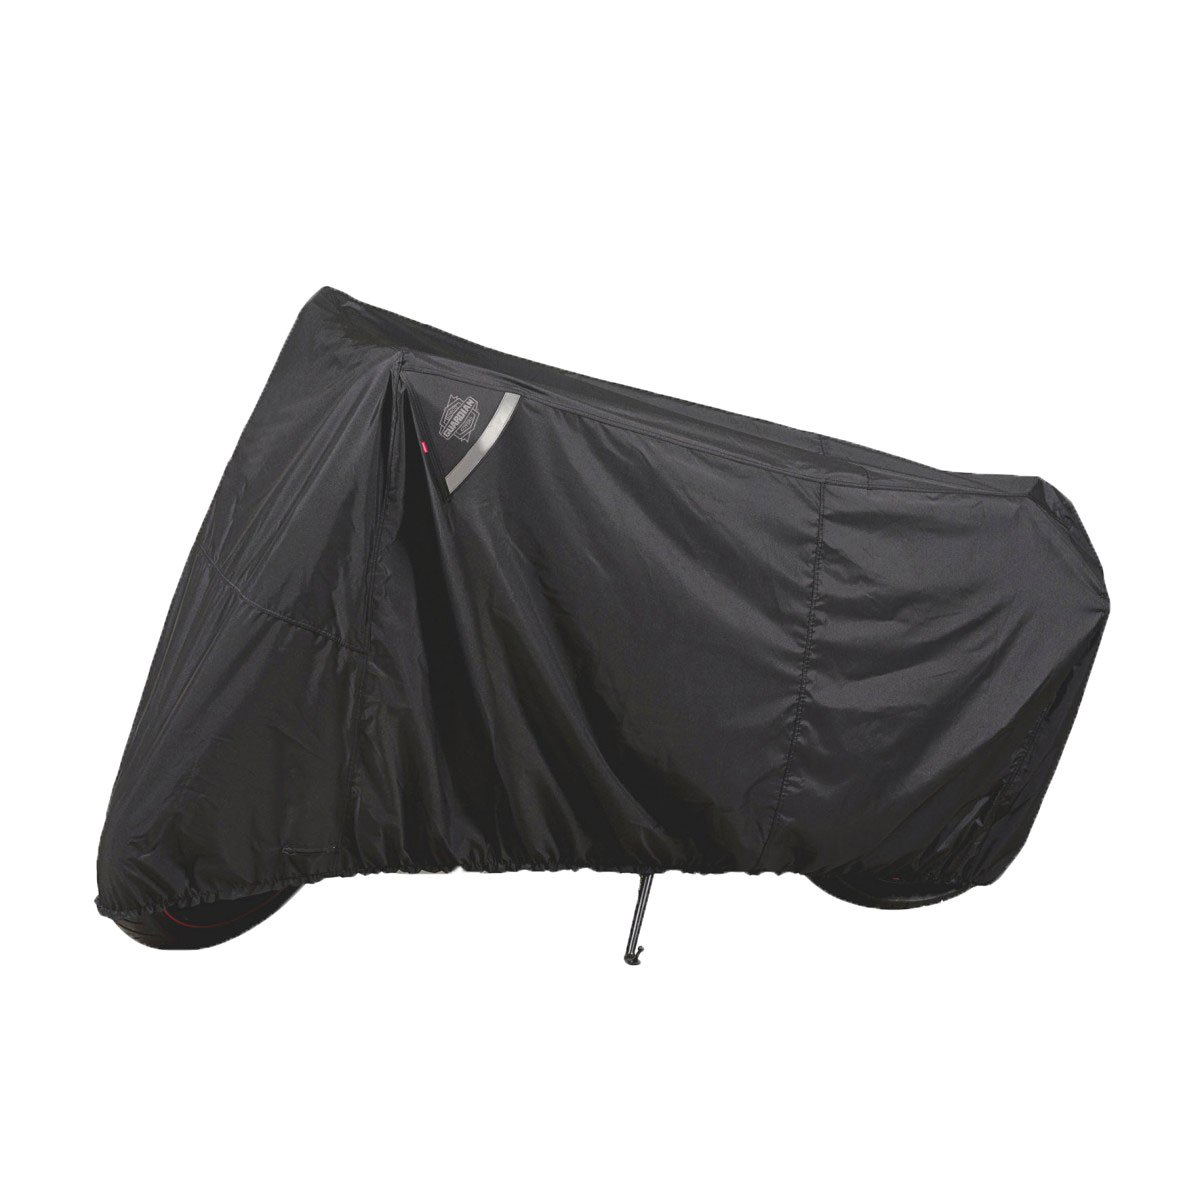 Dowco Guardian 50124-00 WeatherAll Plus Indoor/Outdoor Waterproof Motorcycle Cover: Black, Sportbike